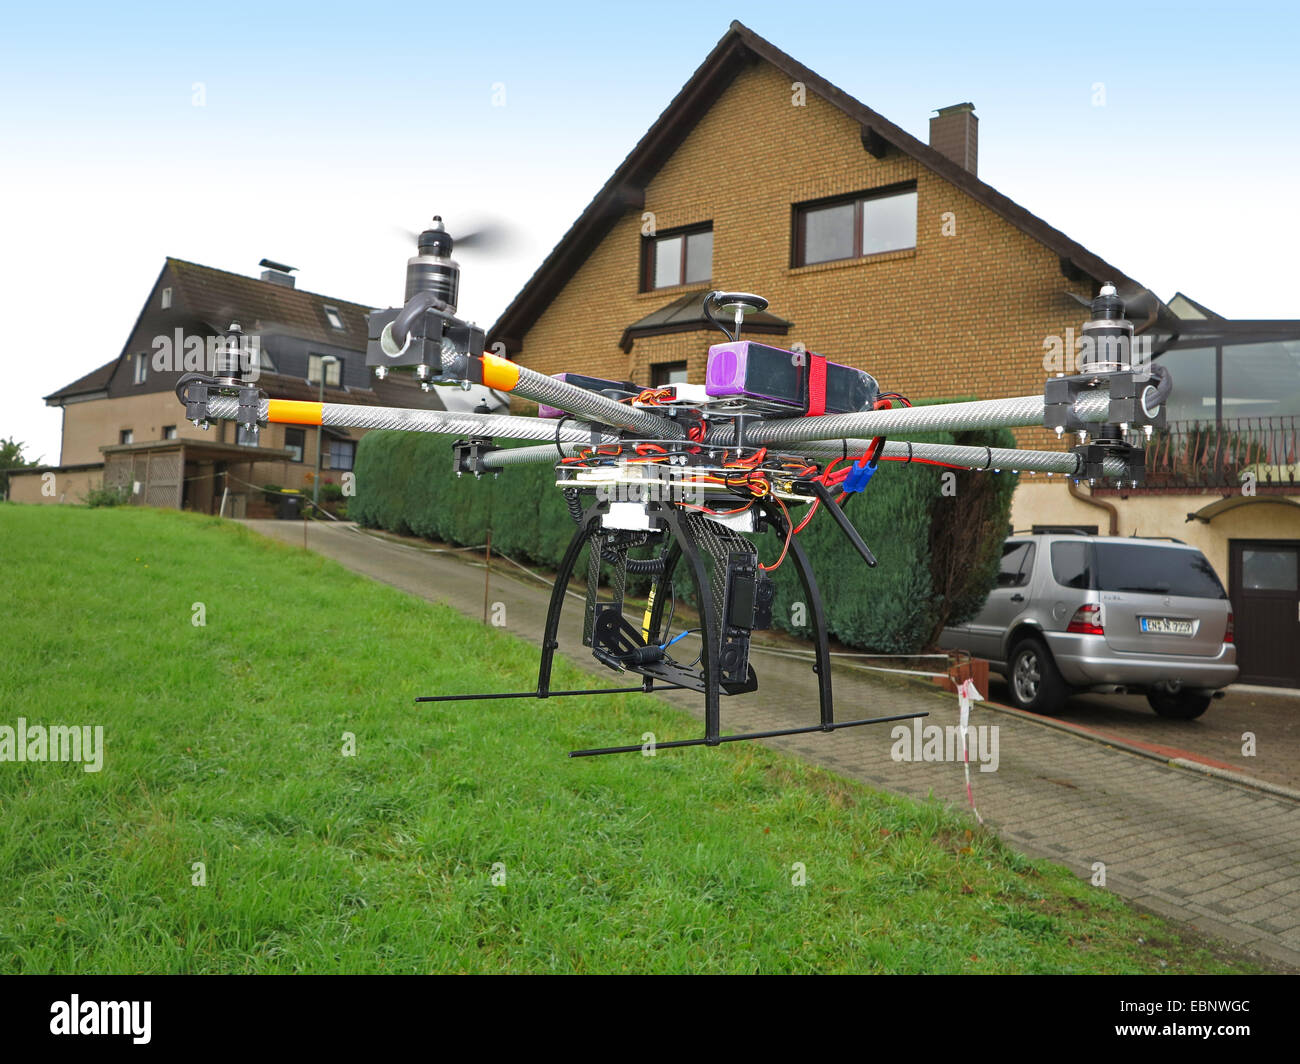 civile drone flying on the edge of a residential area, Germany - Stock Image